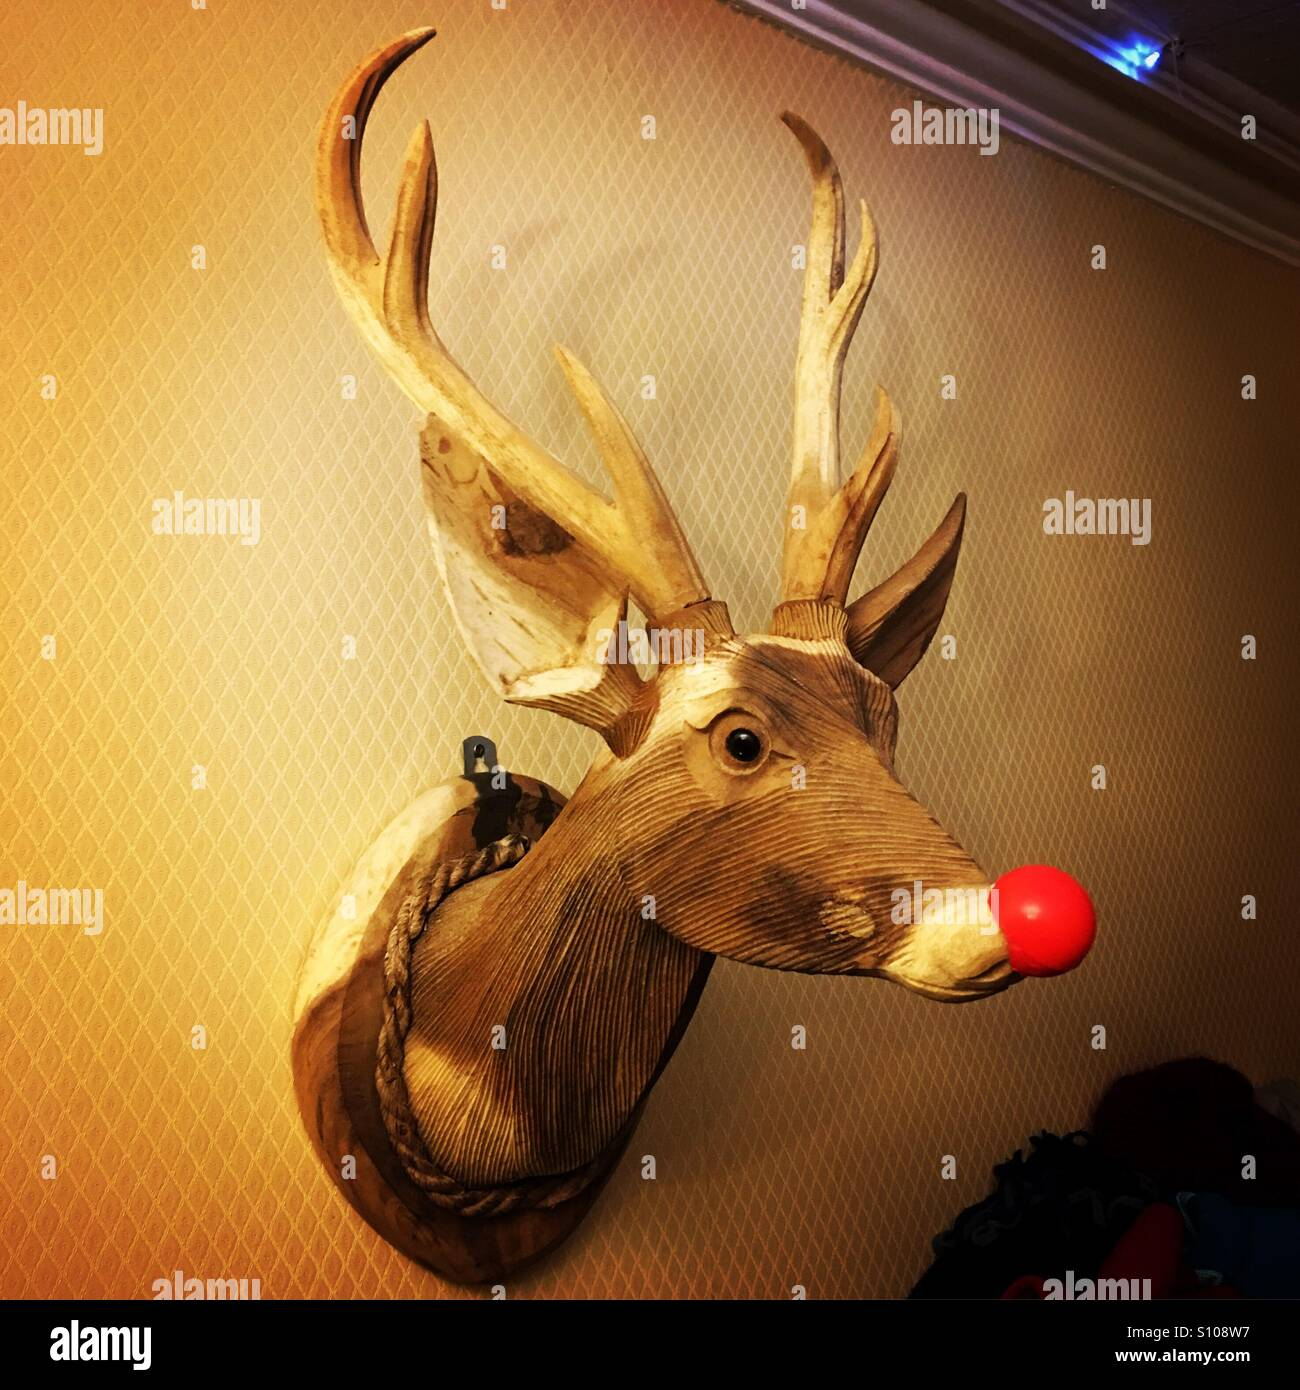 Wooden Rudolf the Red Nosed Reindeer mounted on wall Stock Photo ...